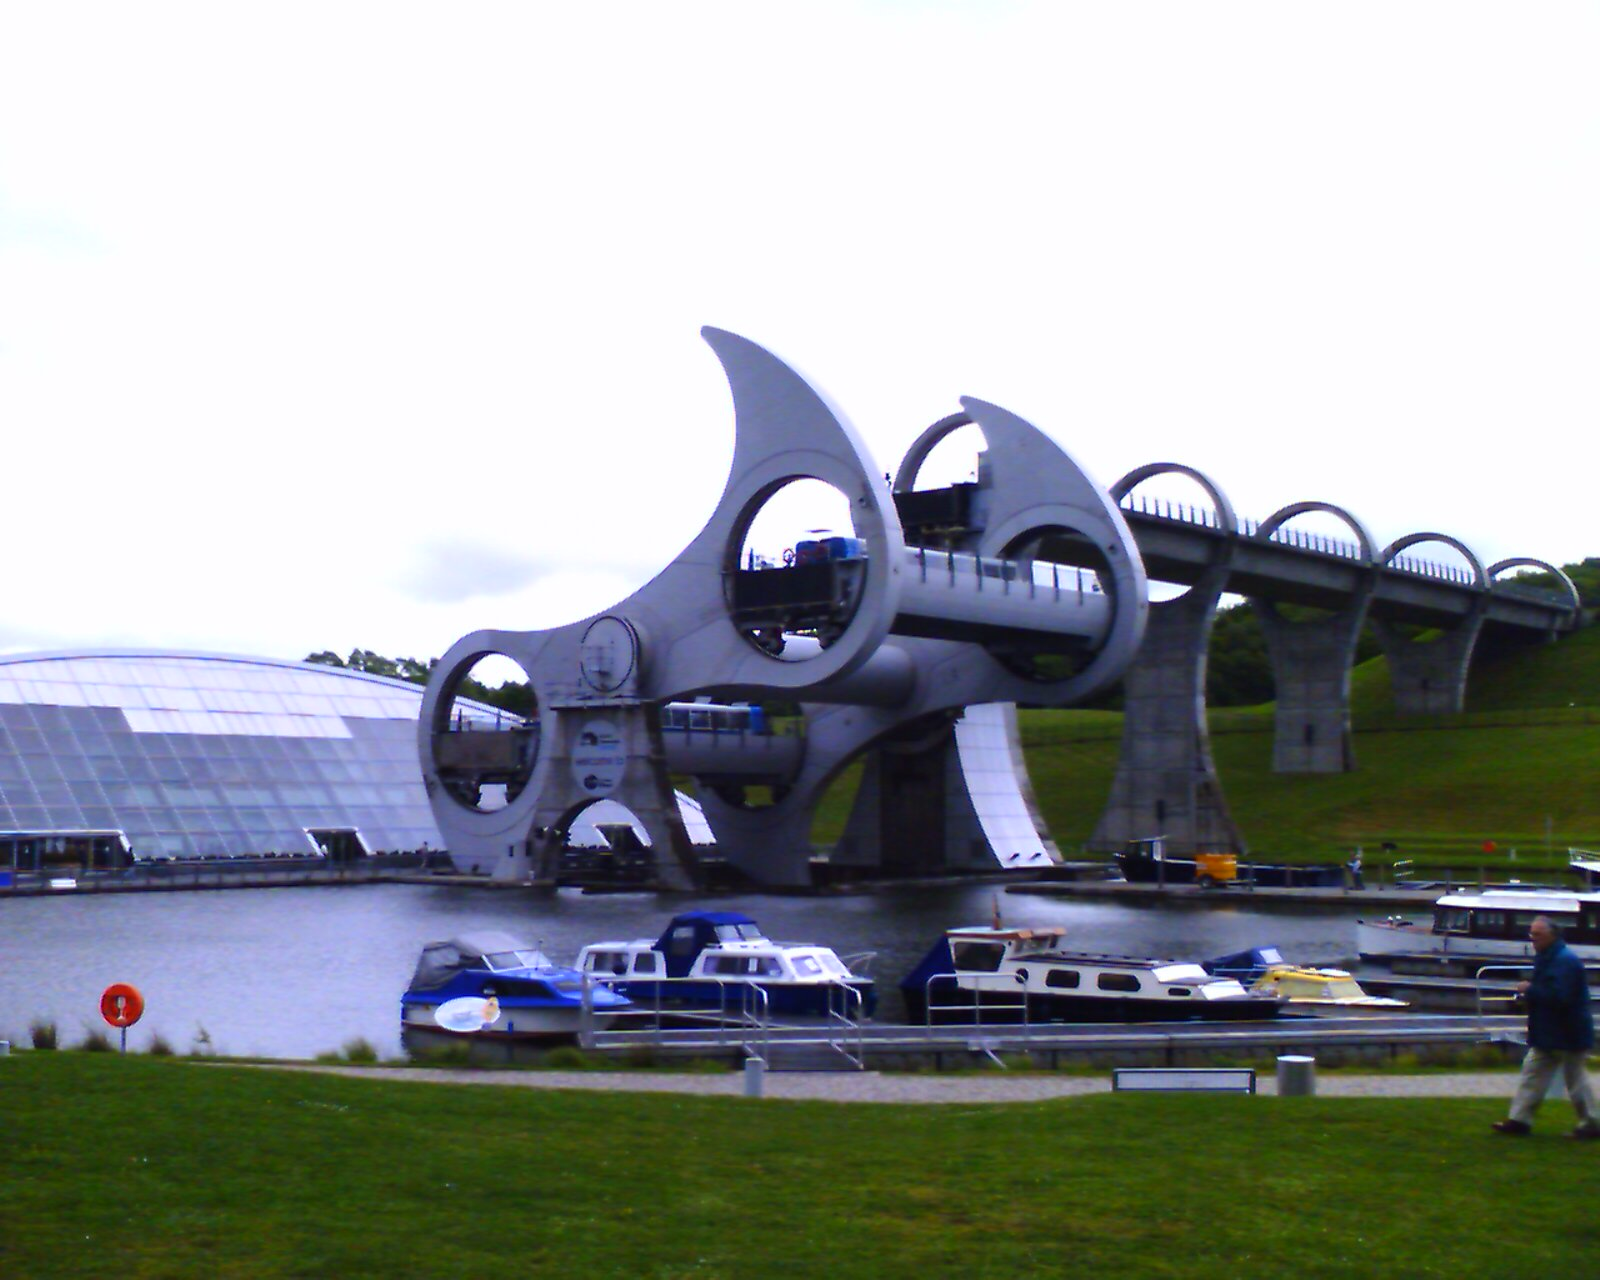 Falkirk Wheel Half Way Up